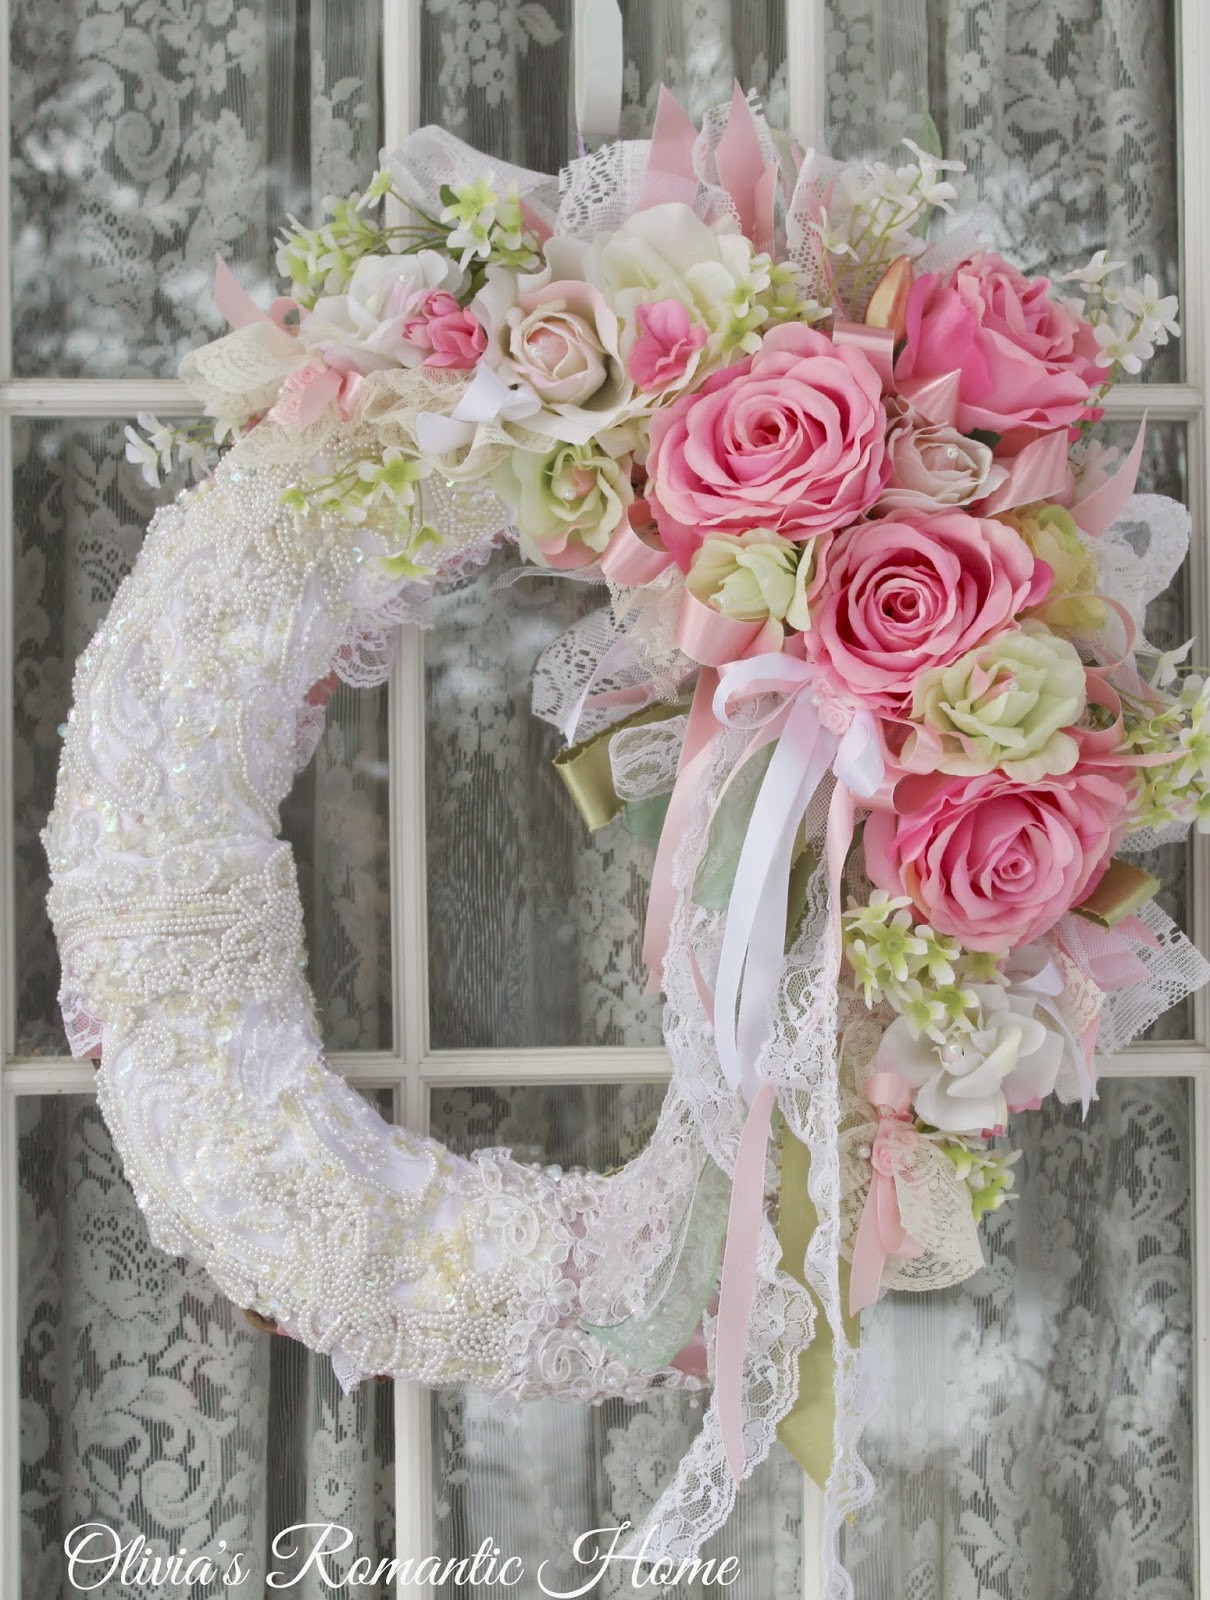 Best ideas about Shabby Chic Wreath . Save or Pin Hello my darlings Now.